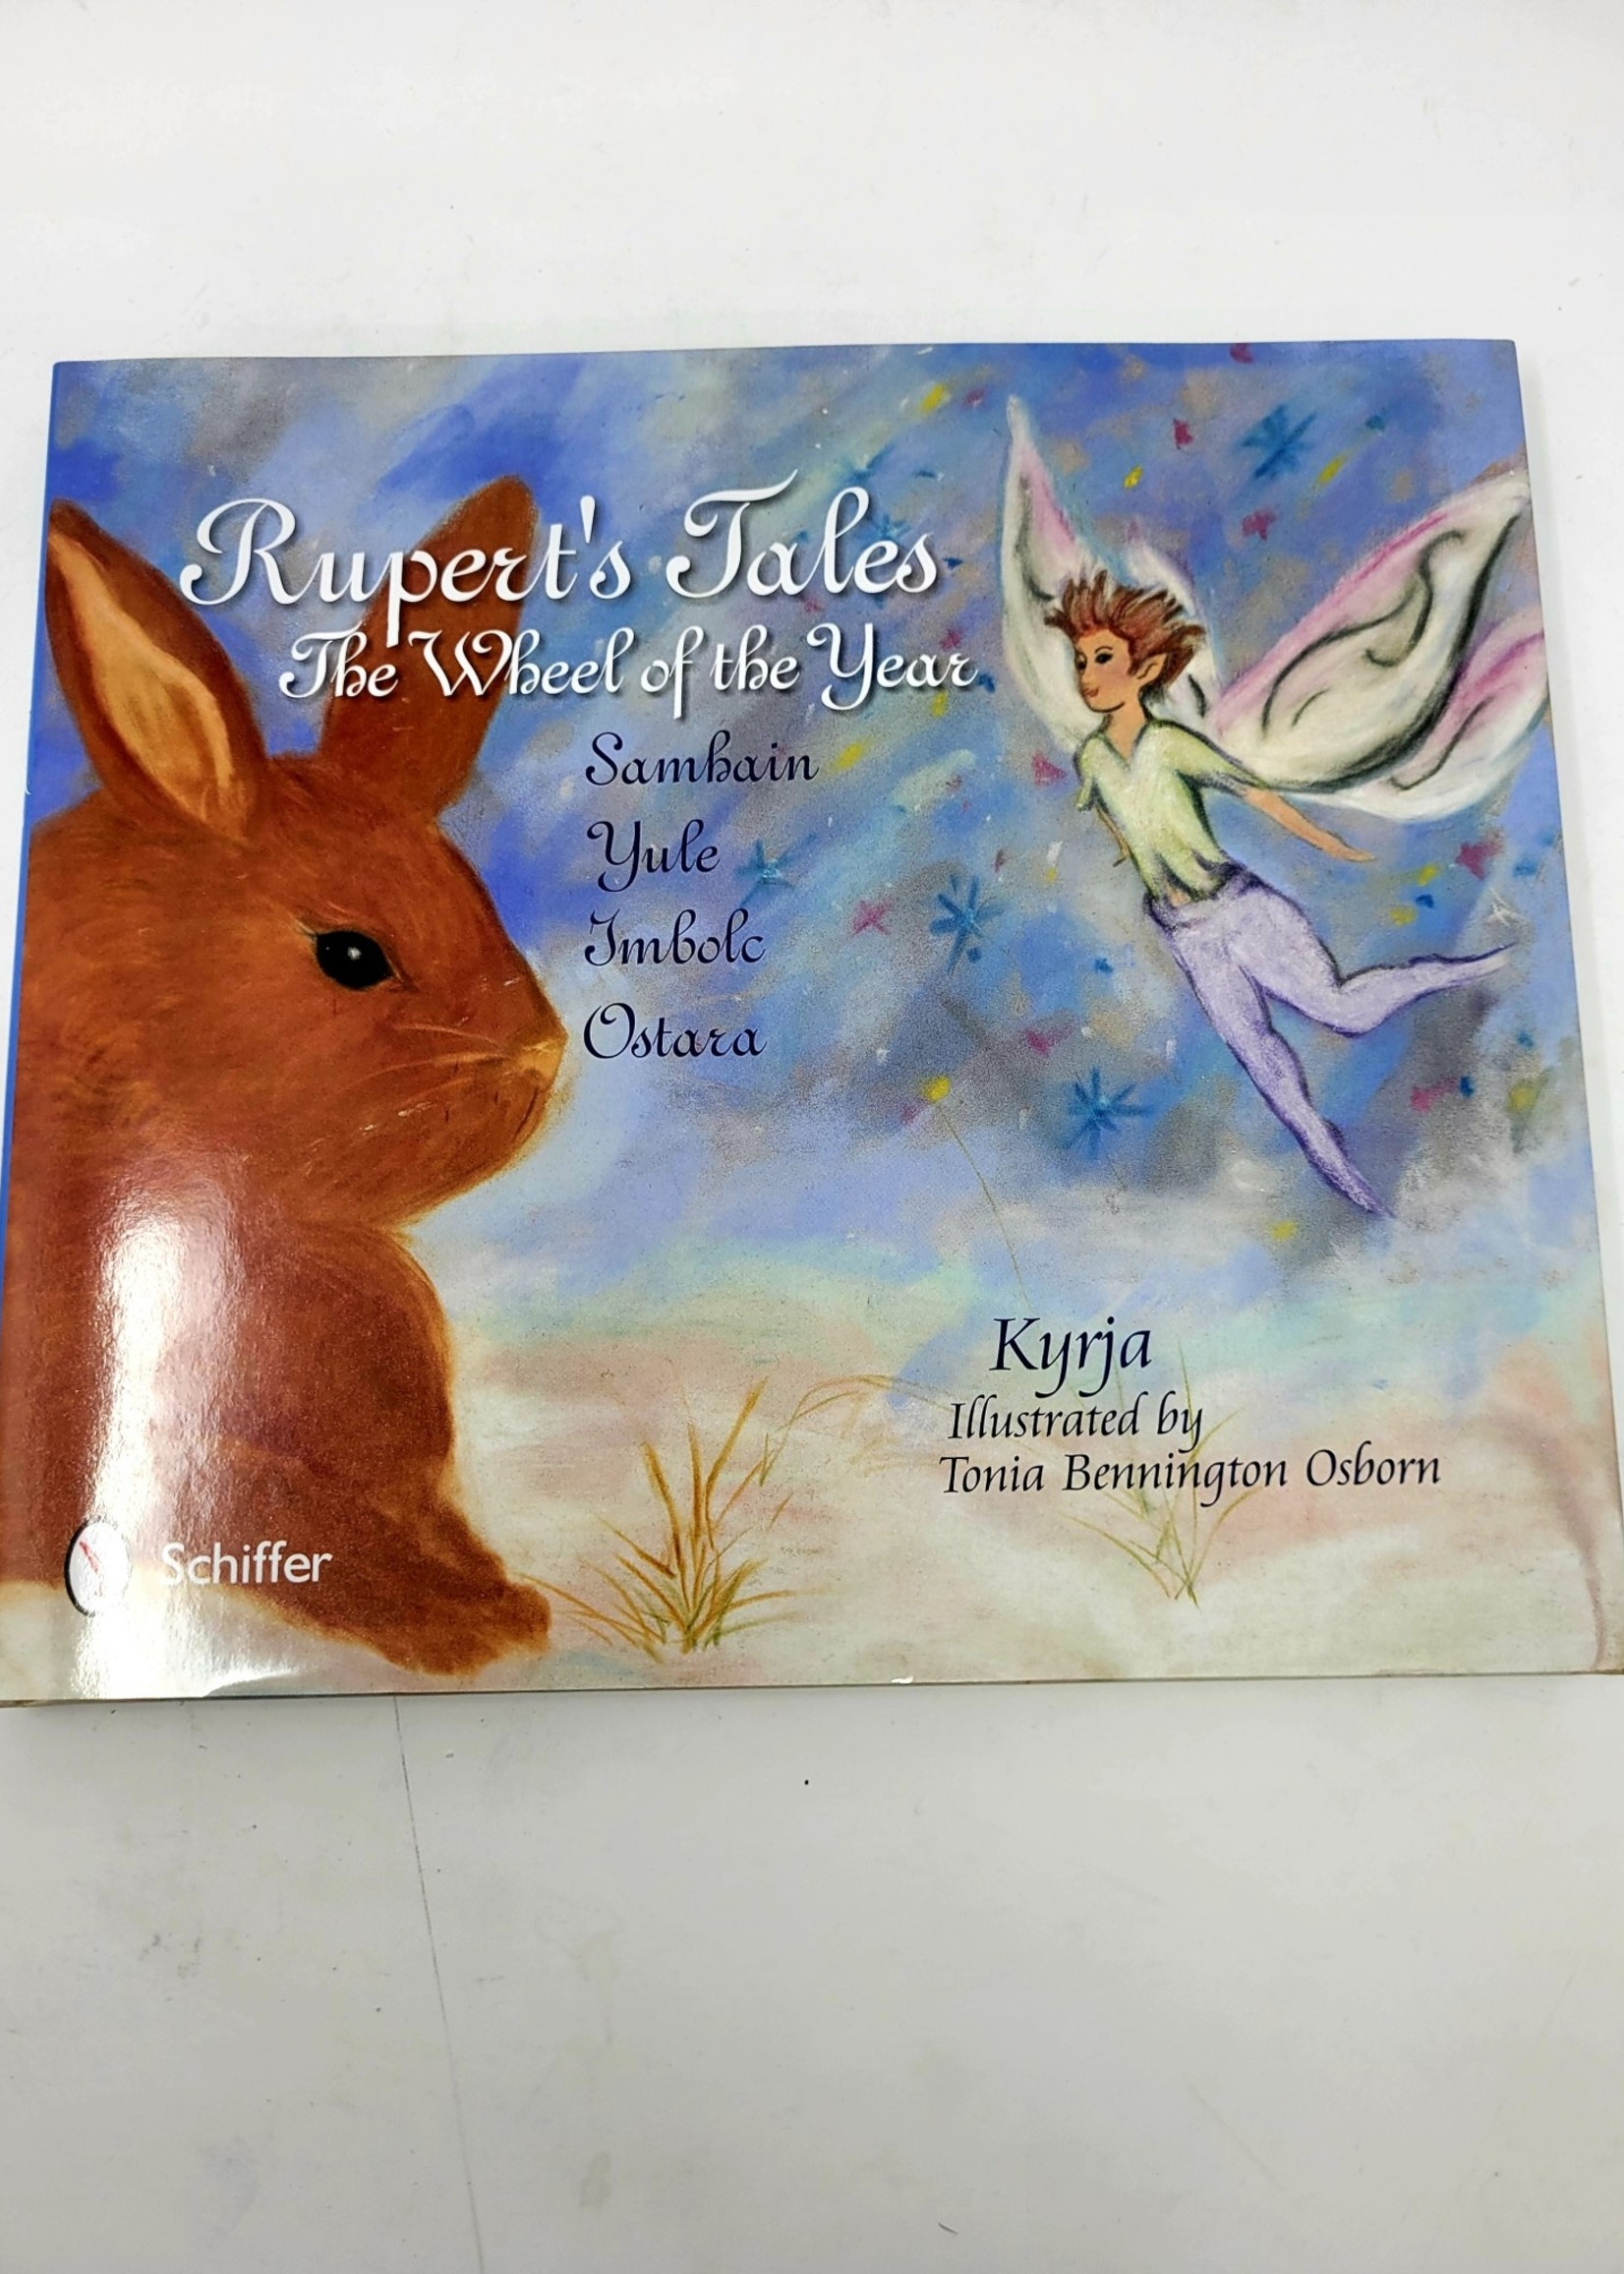 Ruperts Tales The Wheel of the Year